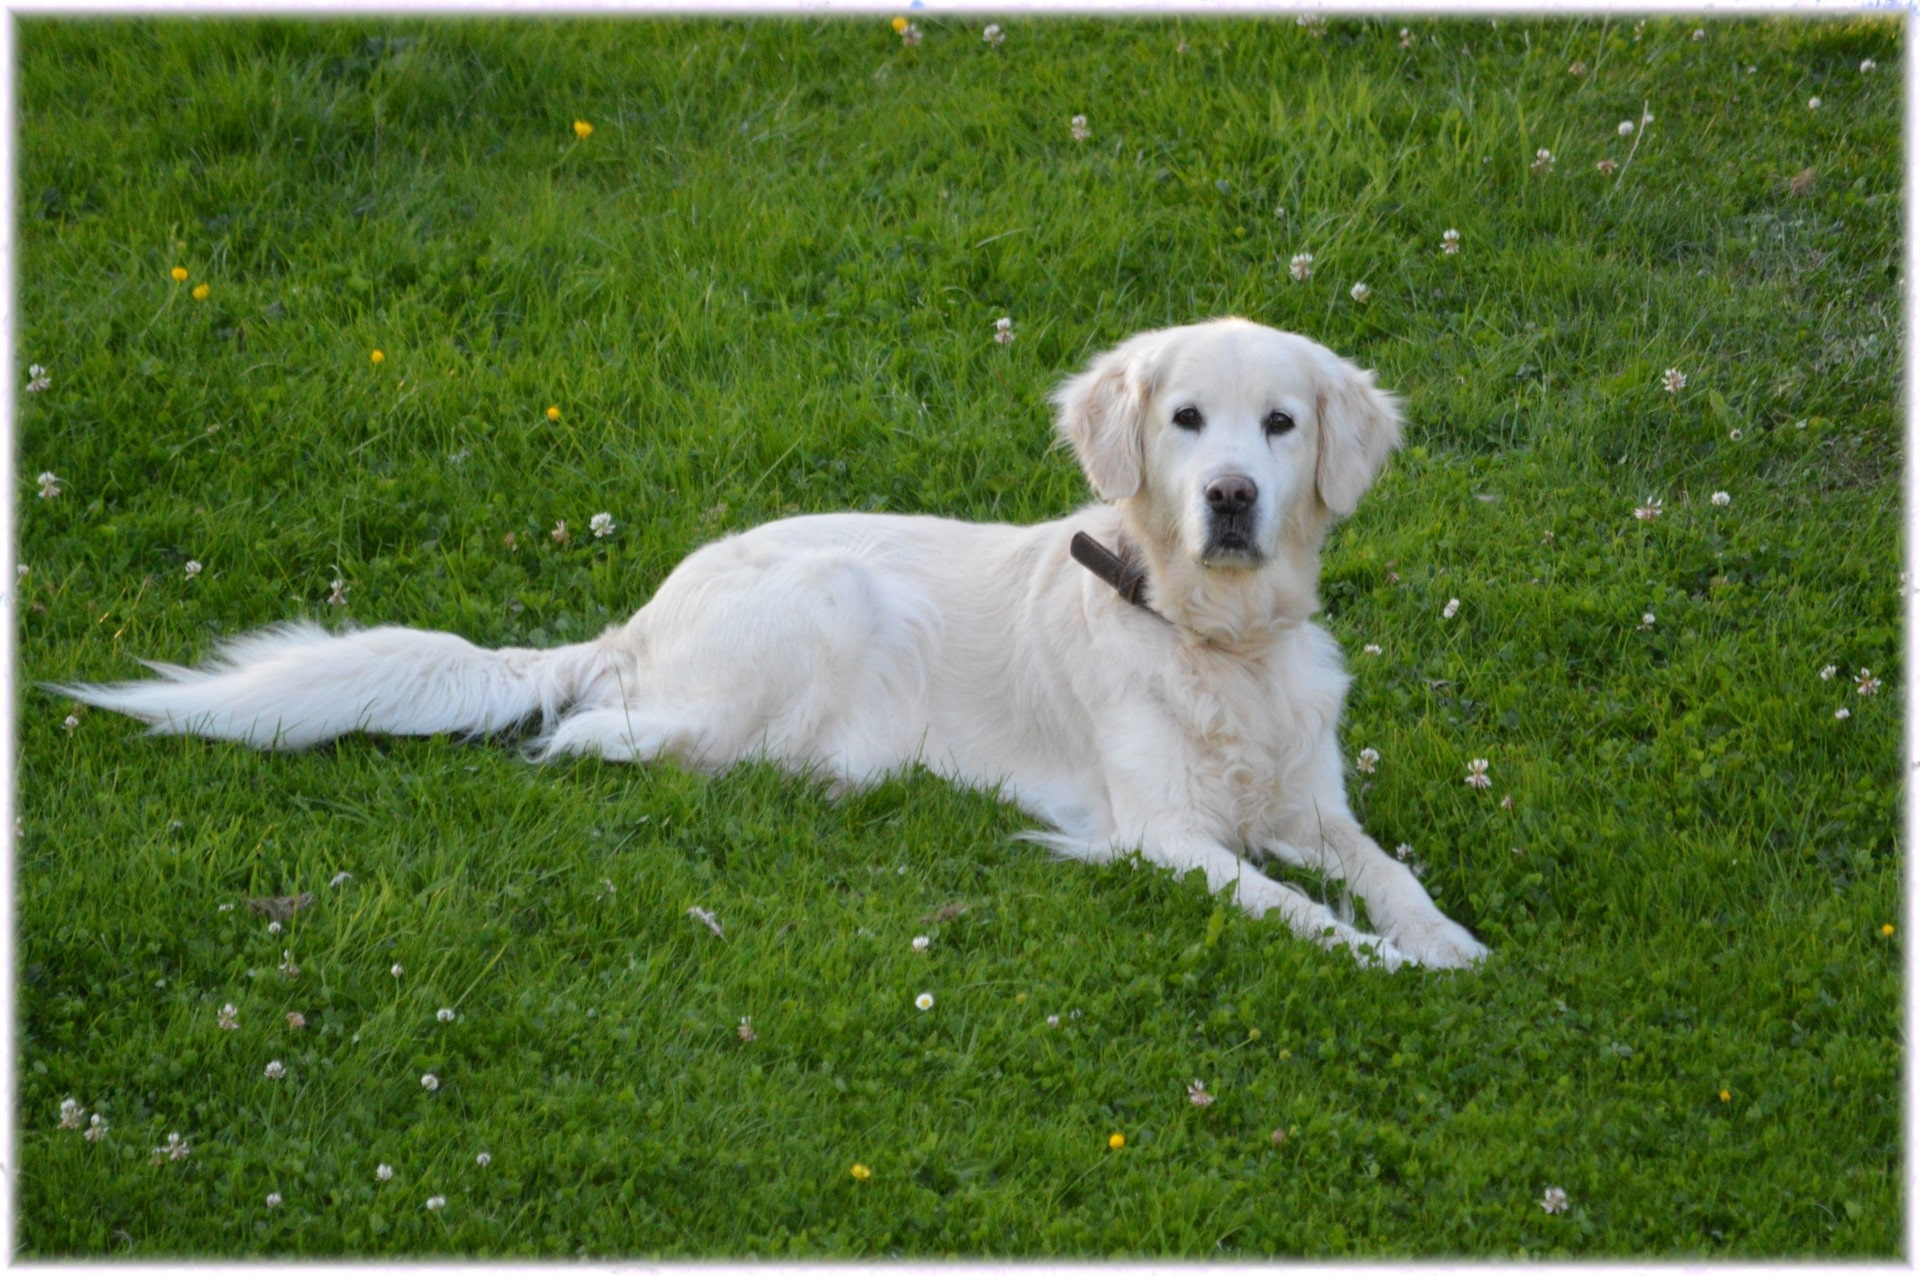 Home Remedies For Fleas On Dogs Like Borax And Dawn Dish